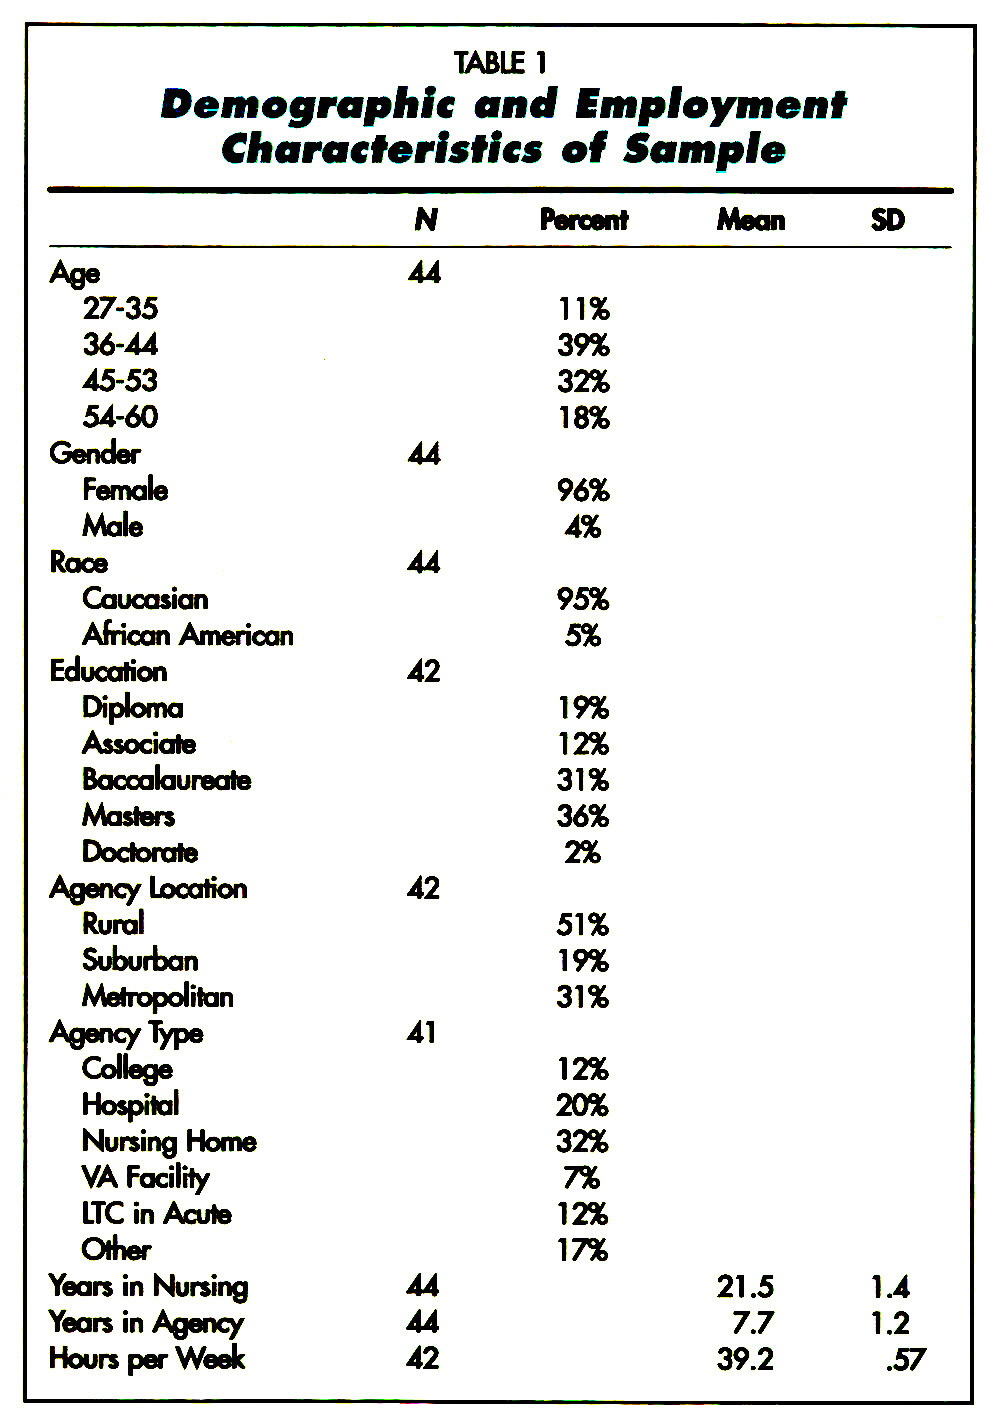 TABLE !Demographic and Employment Characteristics at Sampie